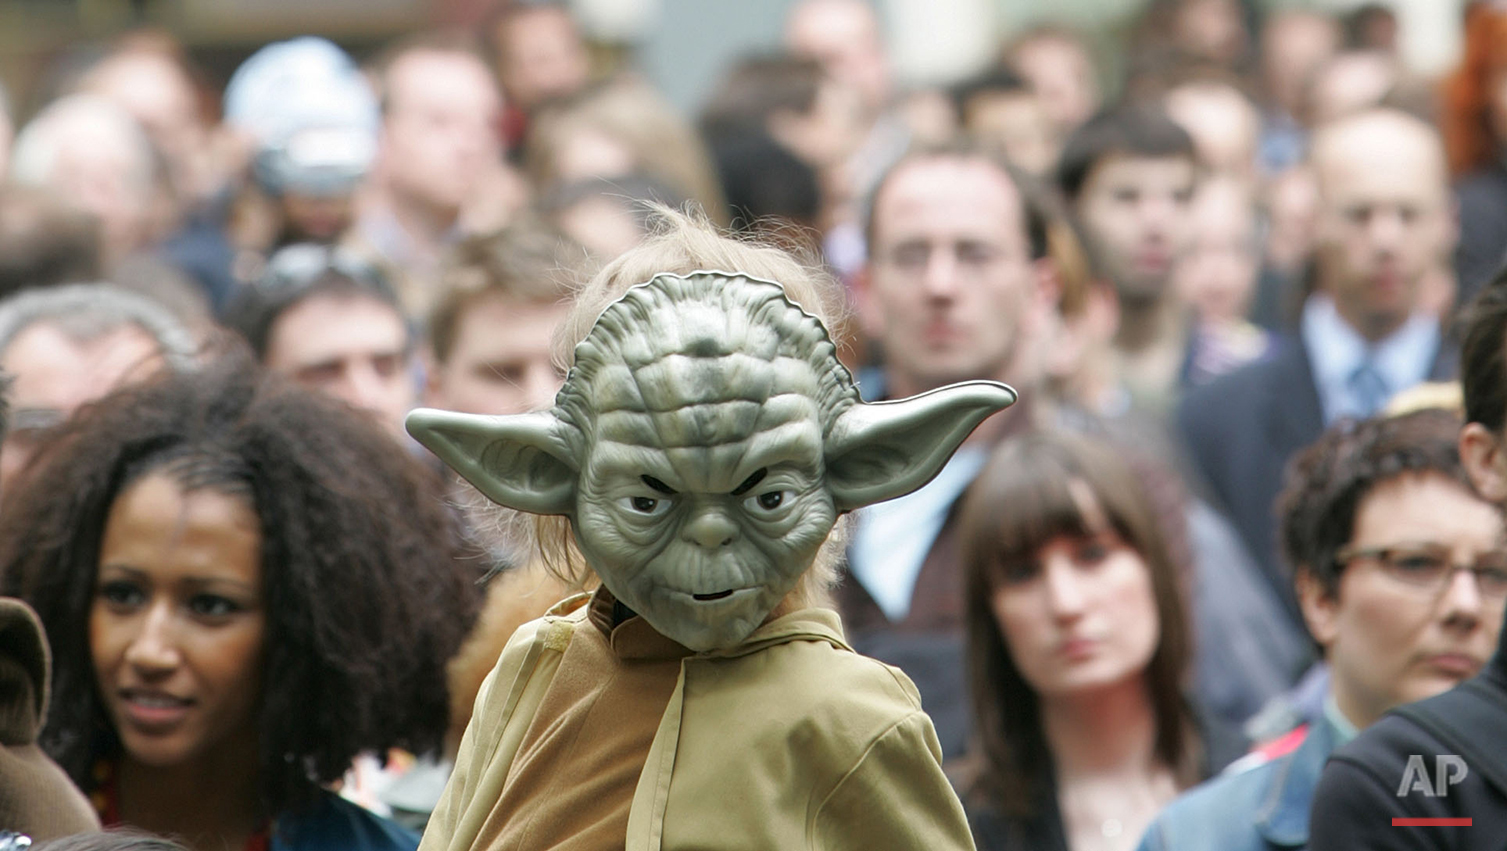 A young boy dressed as the Star Wars character 'Yoda' sits on the shoulders of a man as he watches events in Leicester Square in London and joins in with the premier launch of the film Star Wars Episode III Revenge of the Sith,  Monday May 16, 2005.  The film by American Director George Lucas is the last in the Star Wars series. (AP Photo/Alastair Grant)